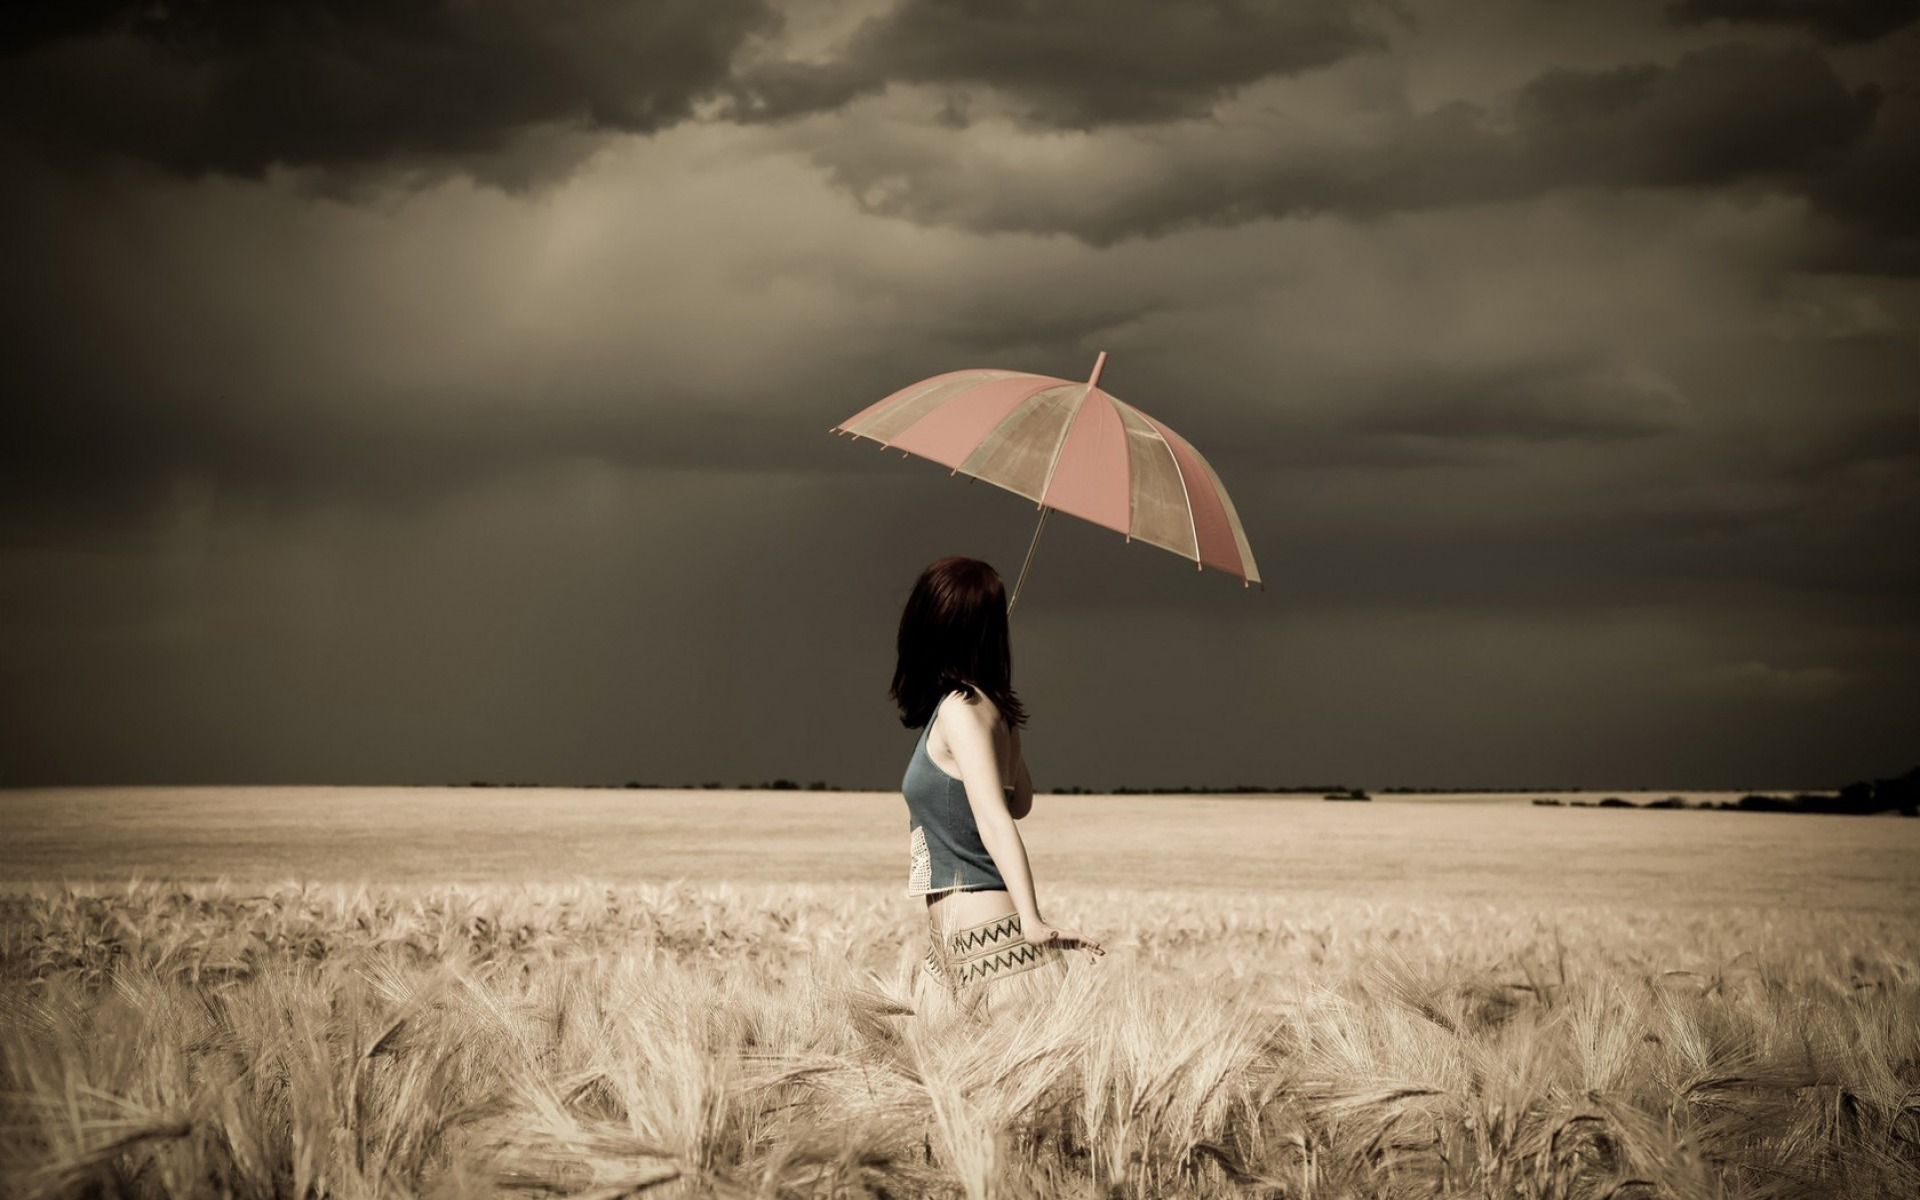 Falling Leaves Wallpaper For Iphone Woman Umbrella Field Stormy Wallpapers Woman Umbrella